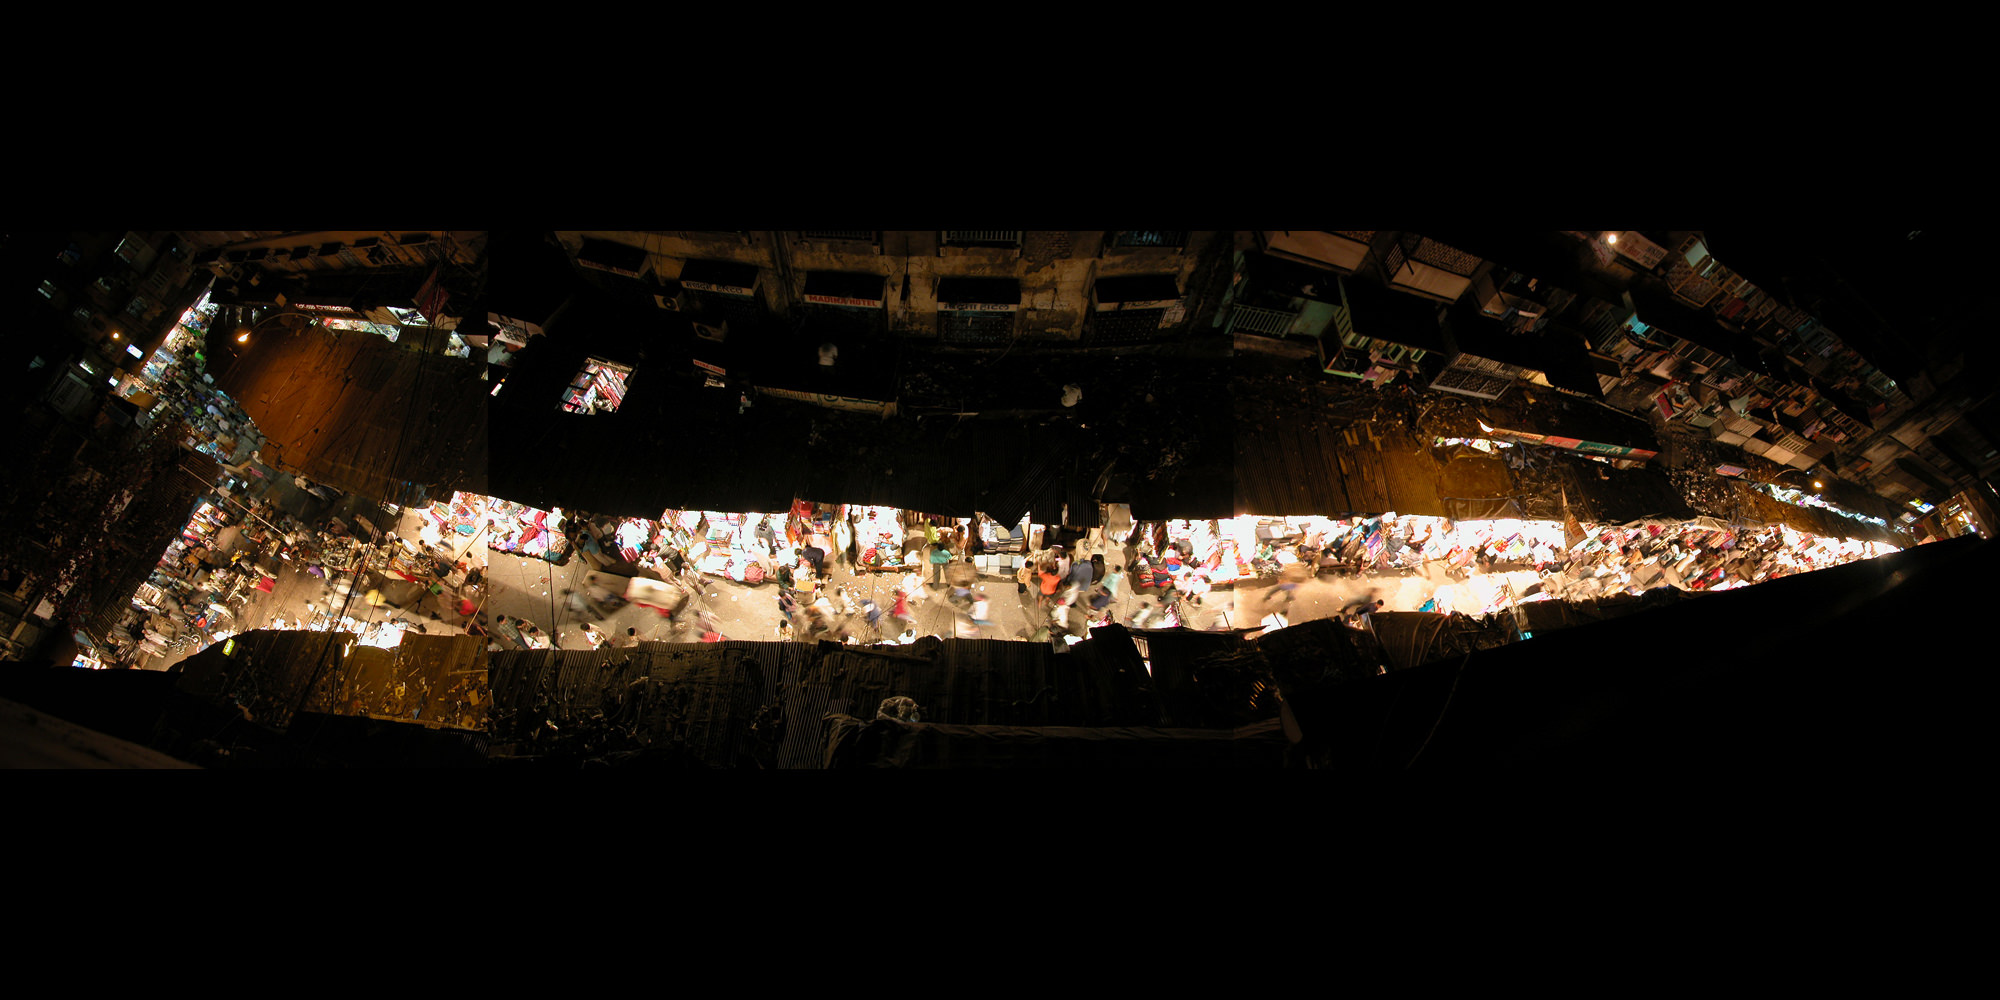 Night Market in Mumbai : lighting mumbai - www.canuckmediamonitor.org